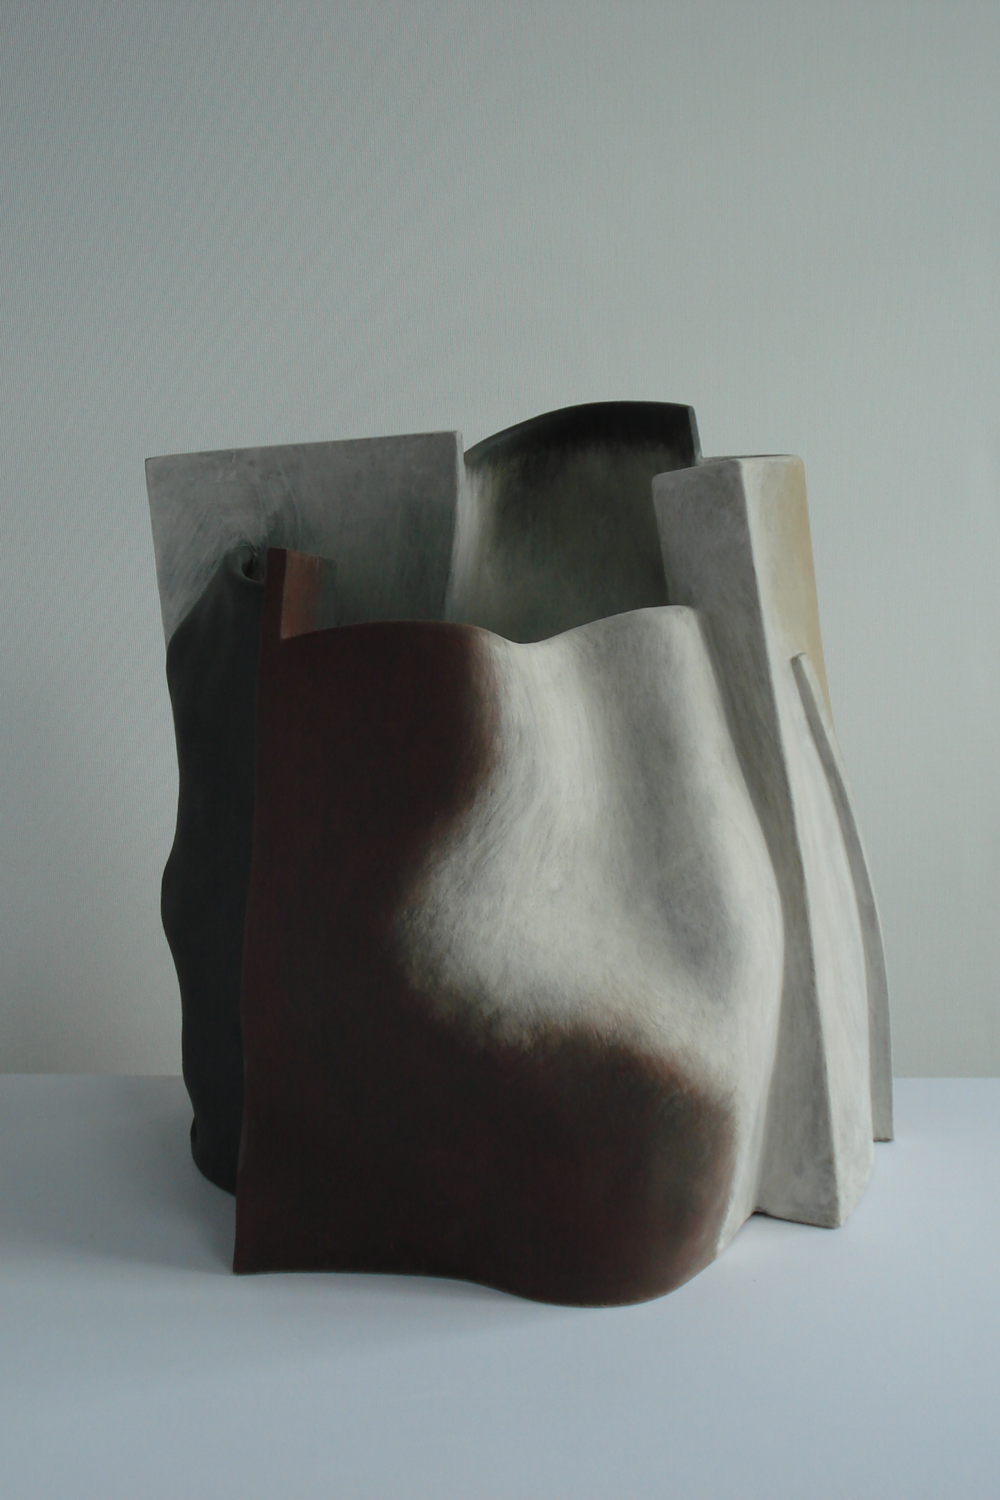 Groundwork, 2007, 31cm high